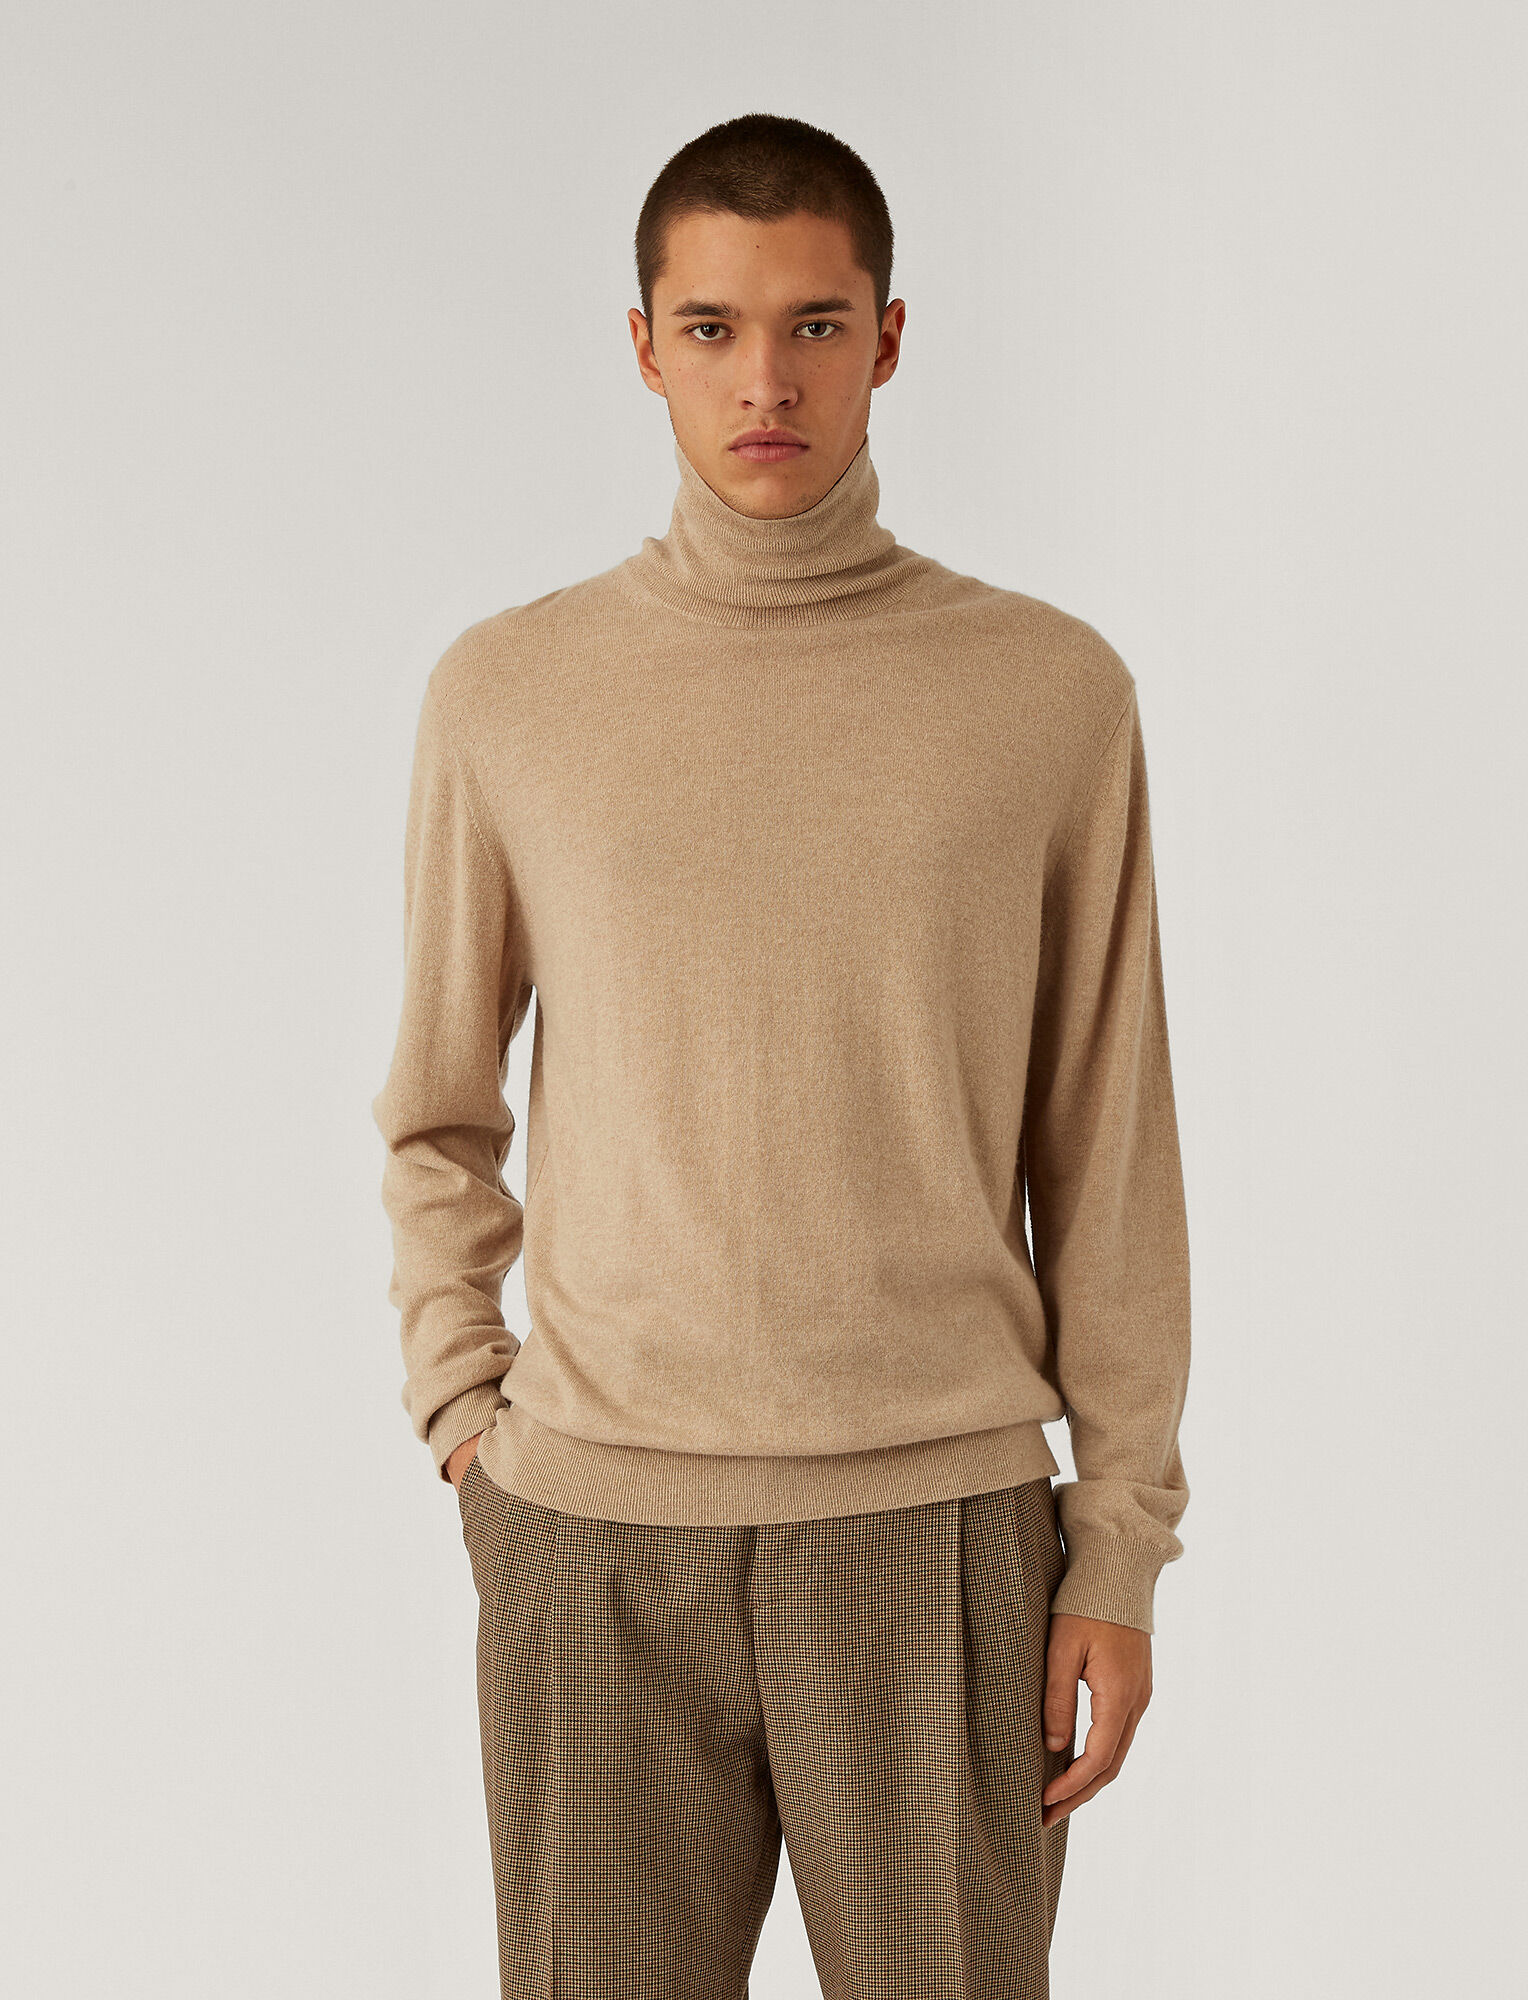 Joseph, Roll Neck Cashmere Knit, in Beige